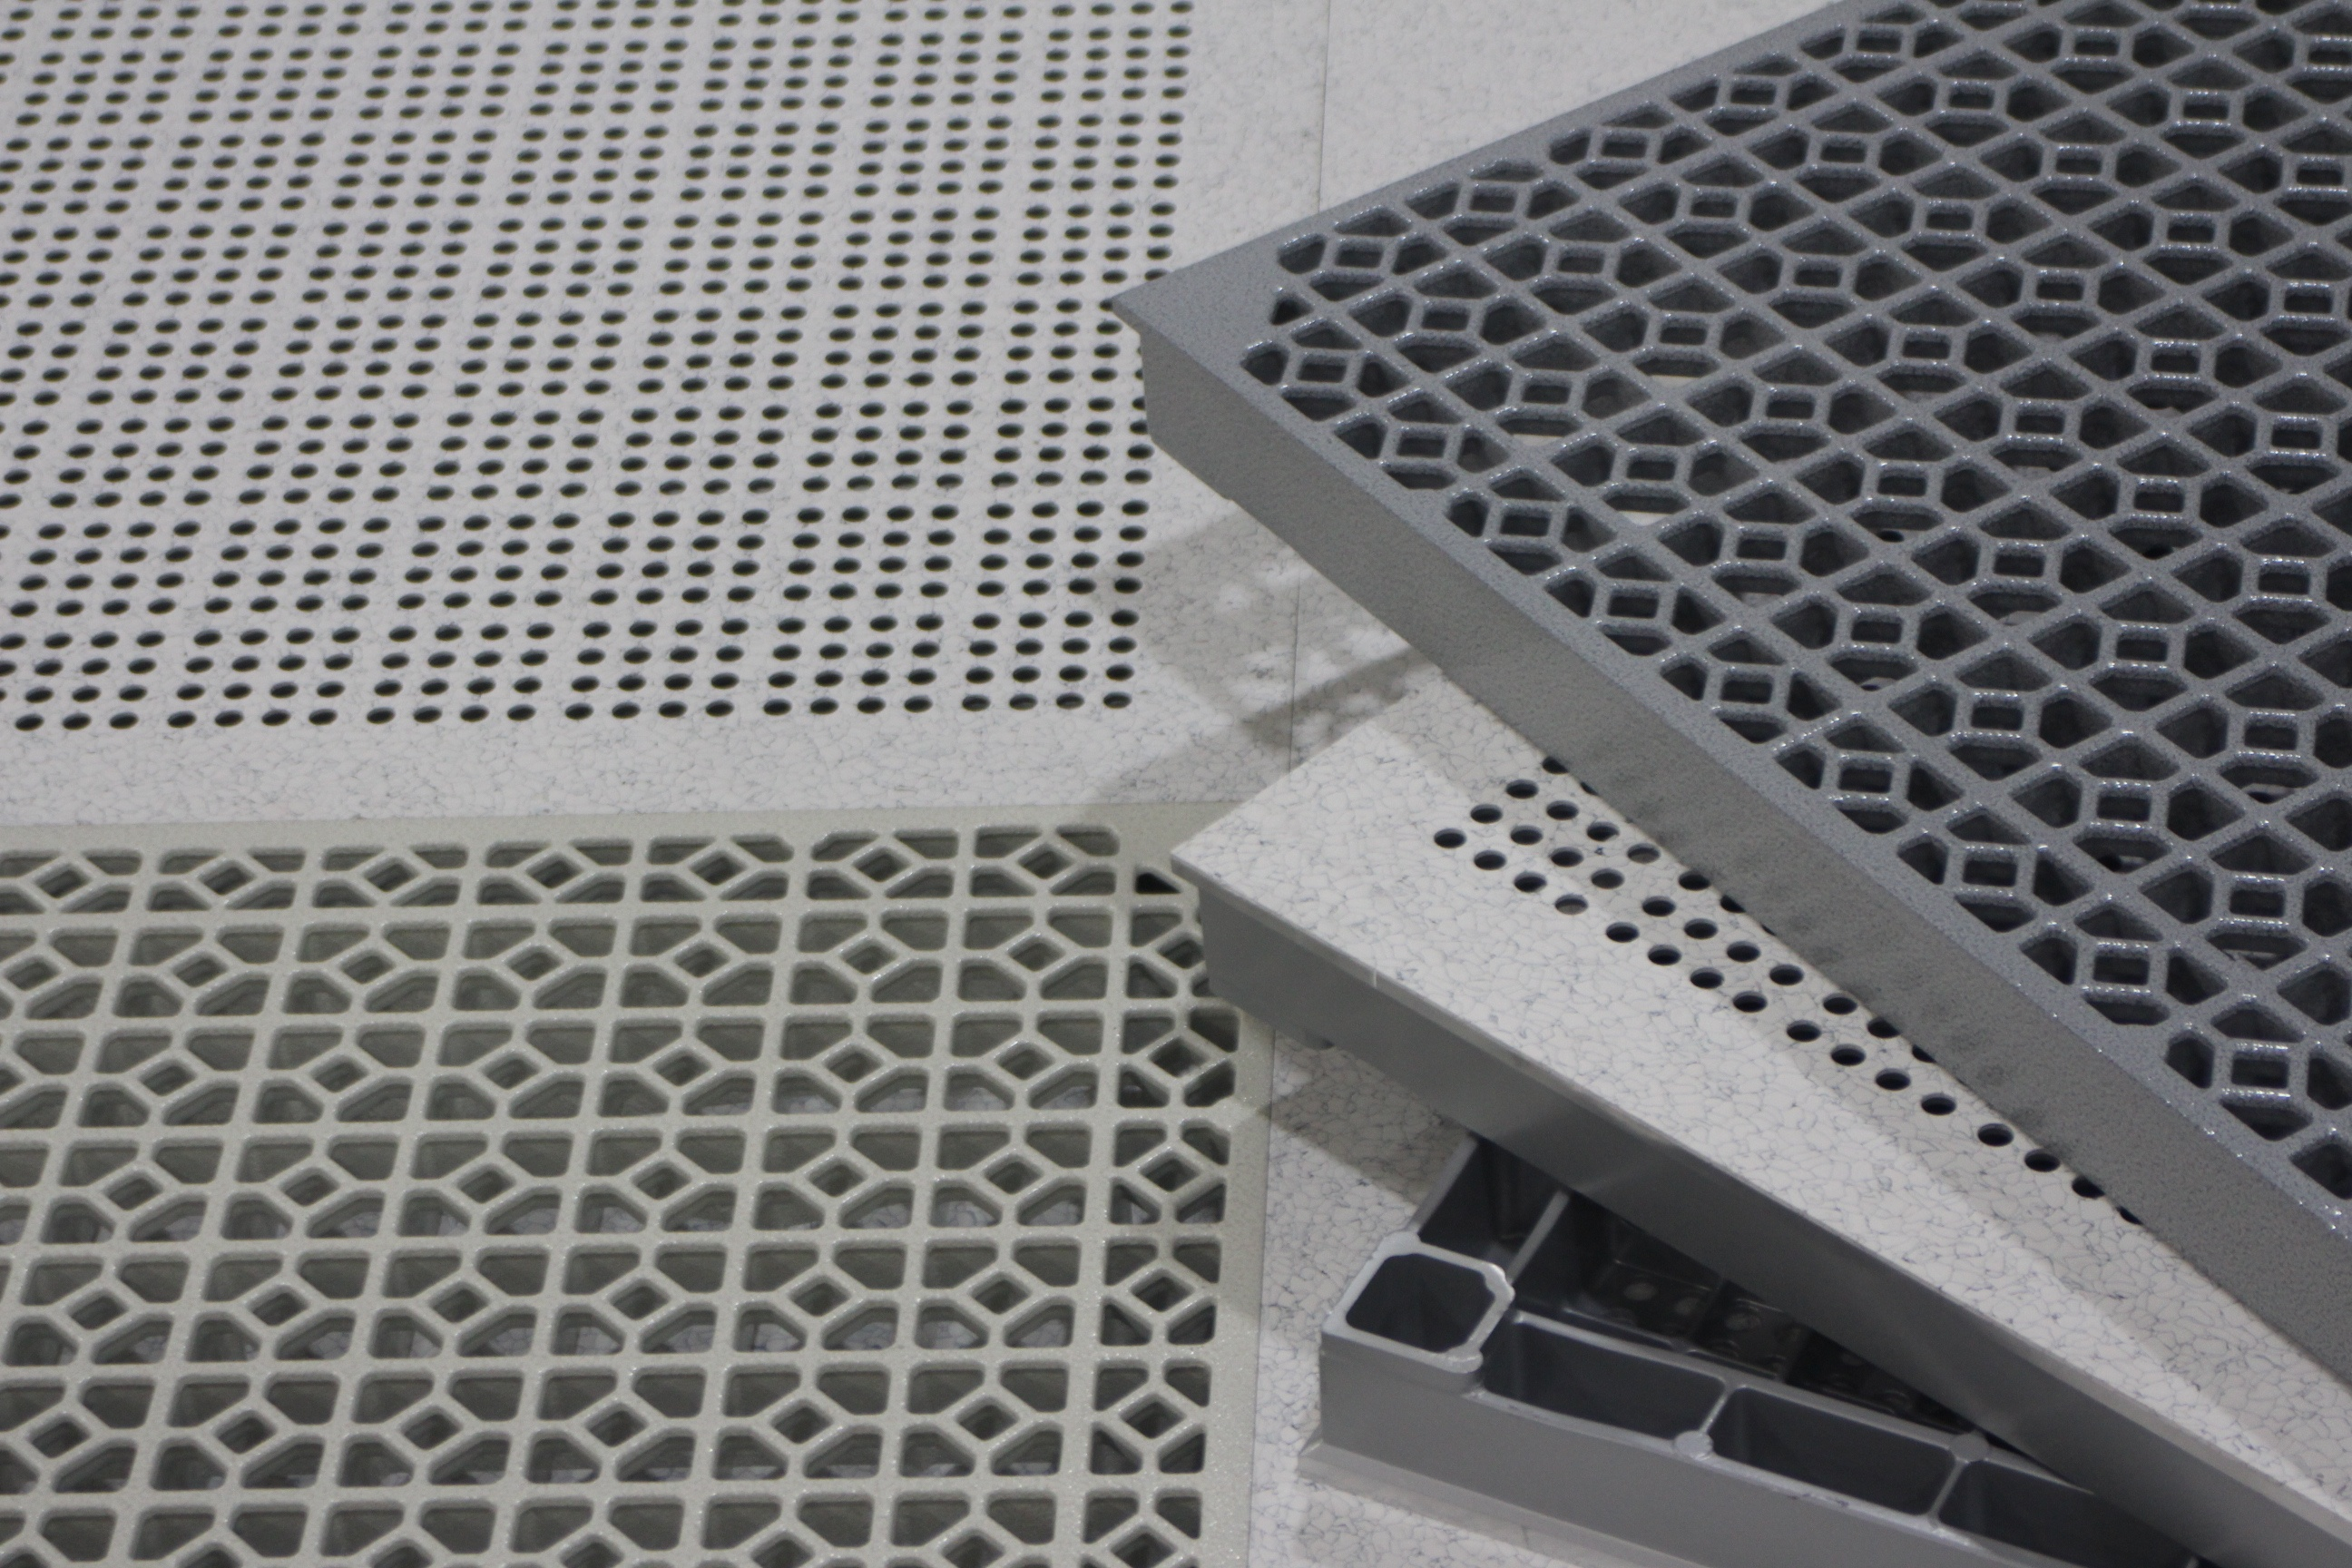 Perforated and Grated Raised Floor Tiles